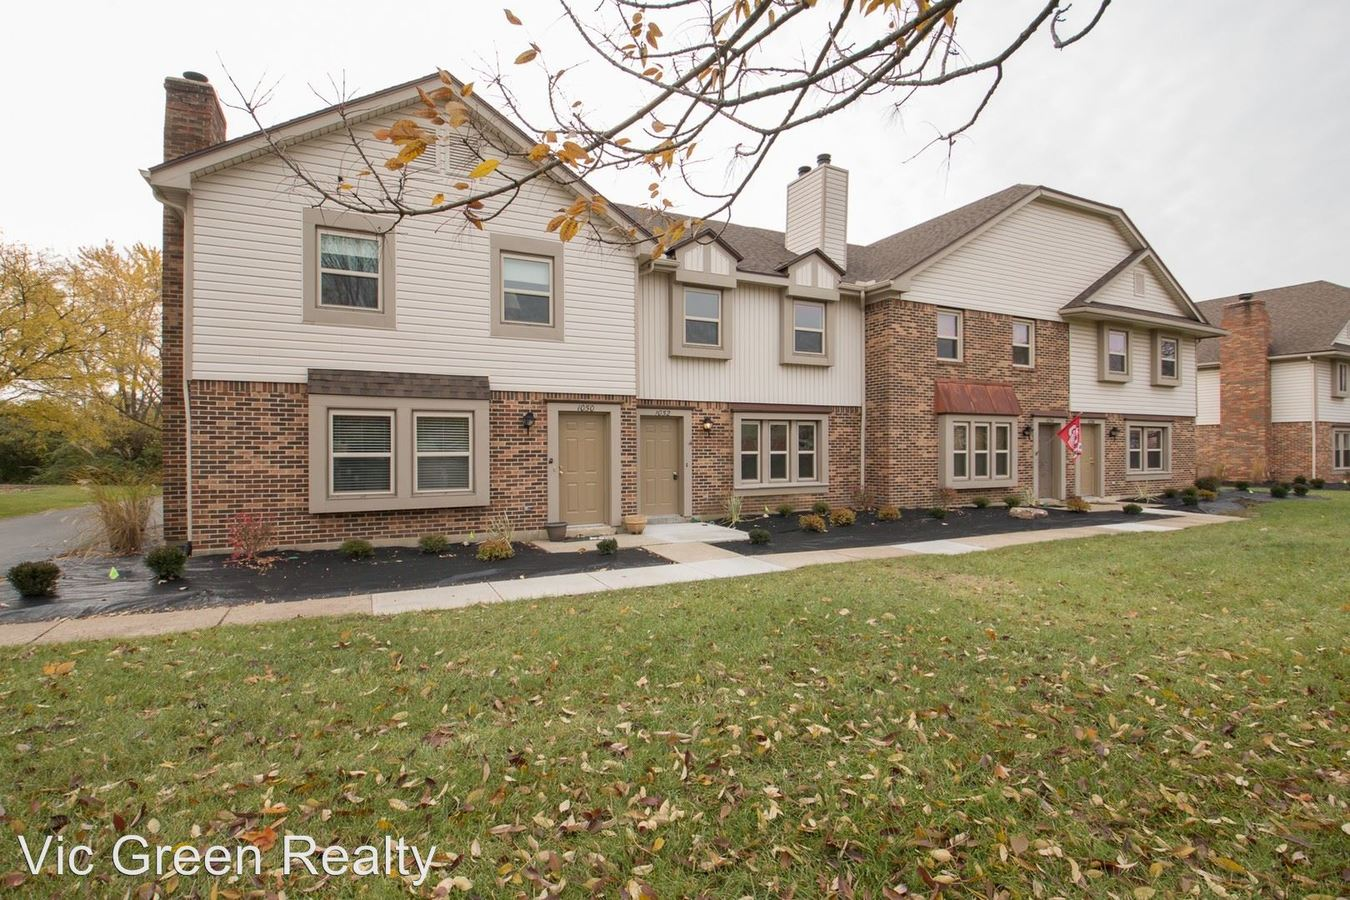 3 Bedrooms 2 Bathrooms Apartment for rent at 1000 Beryl Trail in Dayton, OH